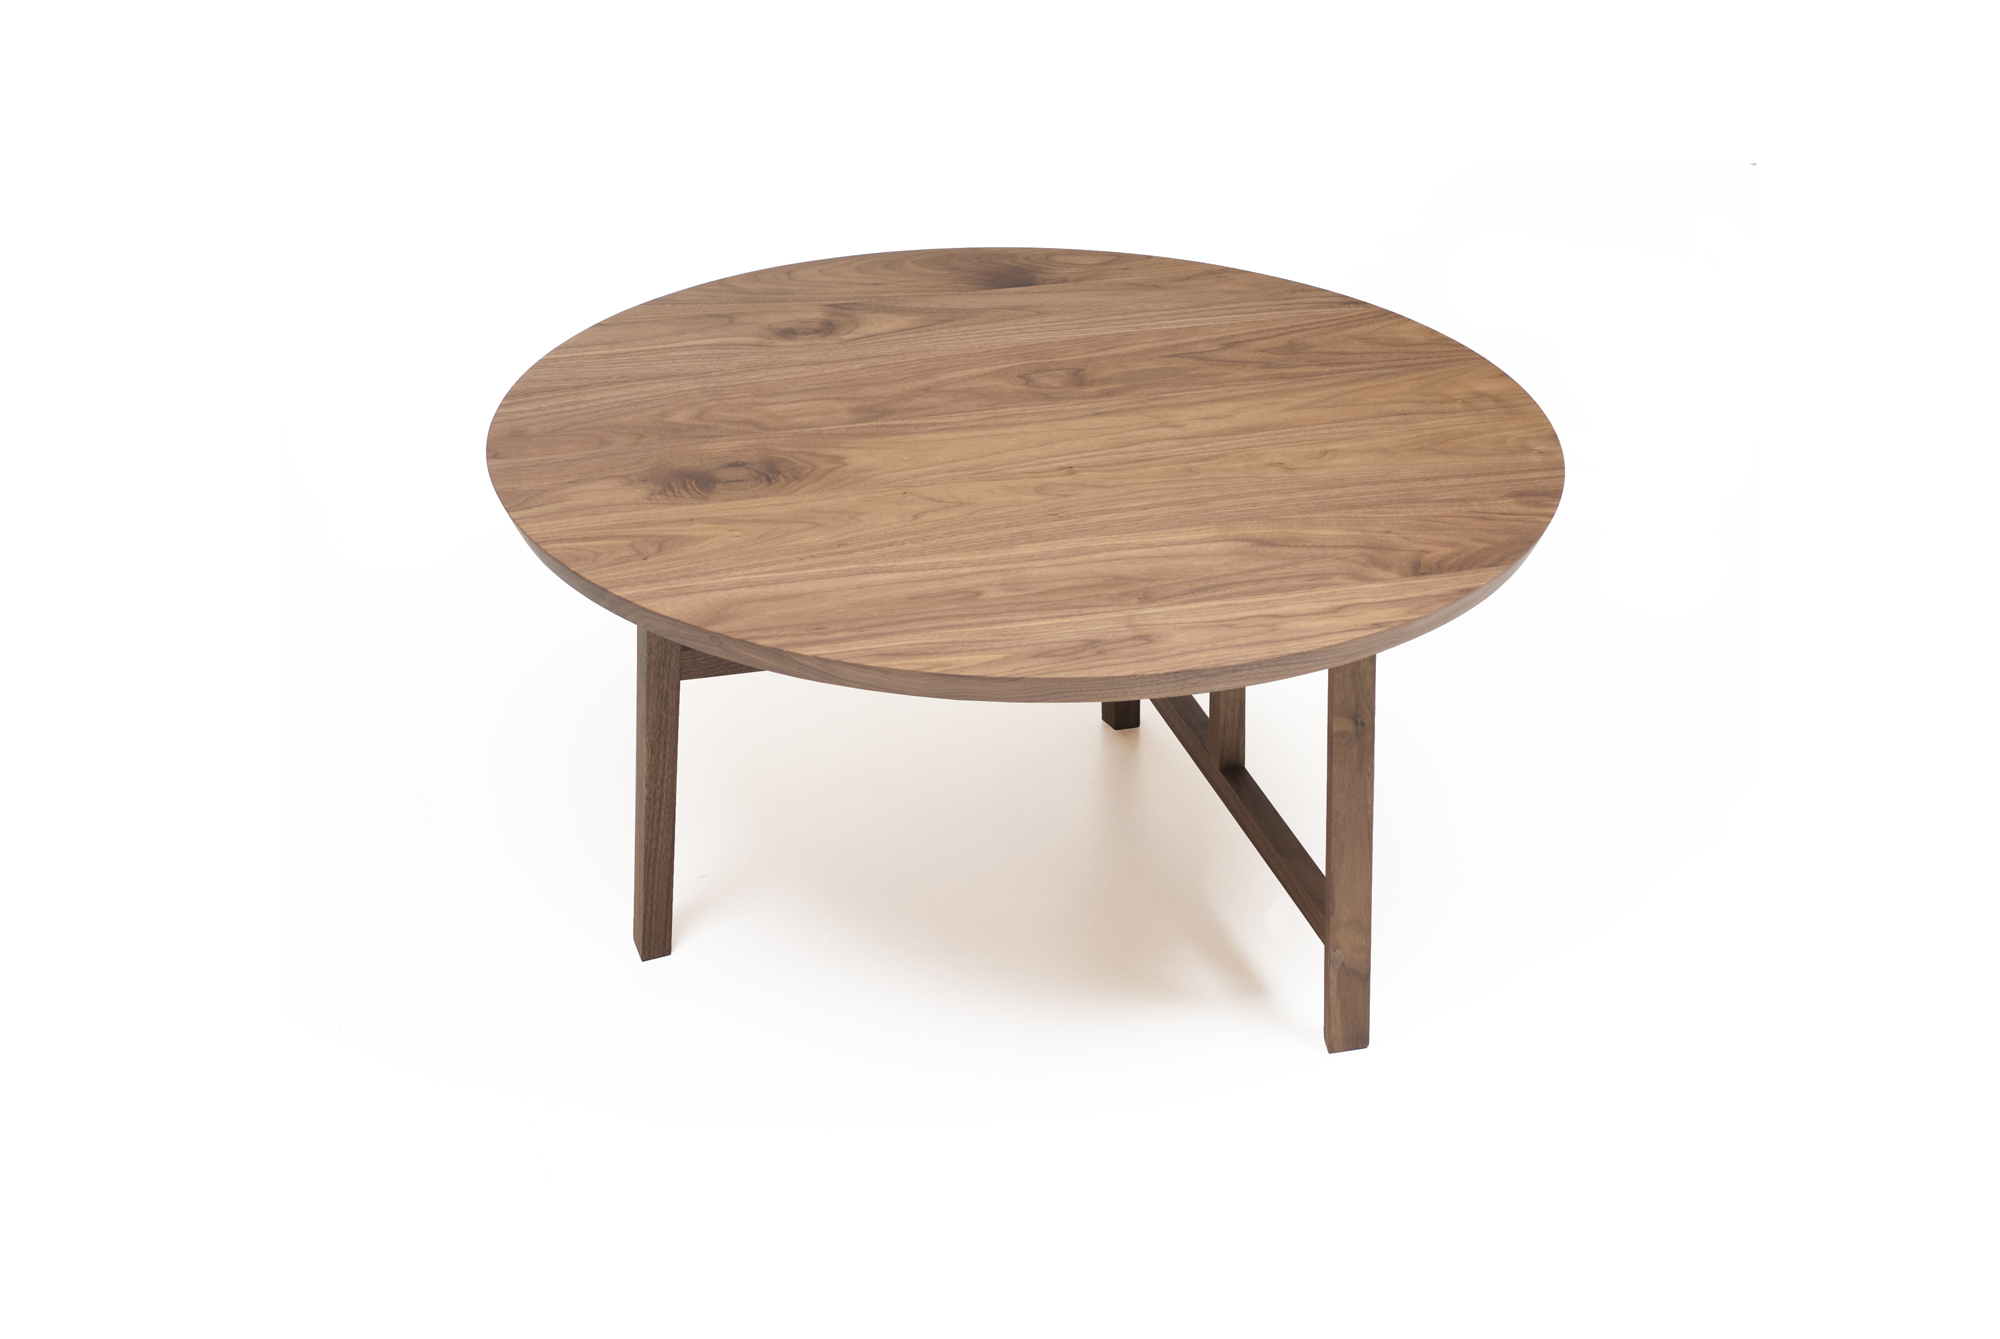 Viewing Neri&hu 754Mm Trio Round Coffee Table With Marble Top Product Intended For Trendy Suspend Ii Marble And Wood Coffee Tables (View 17 of 20)